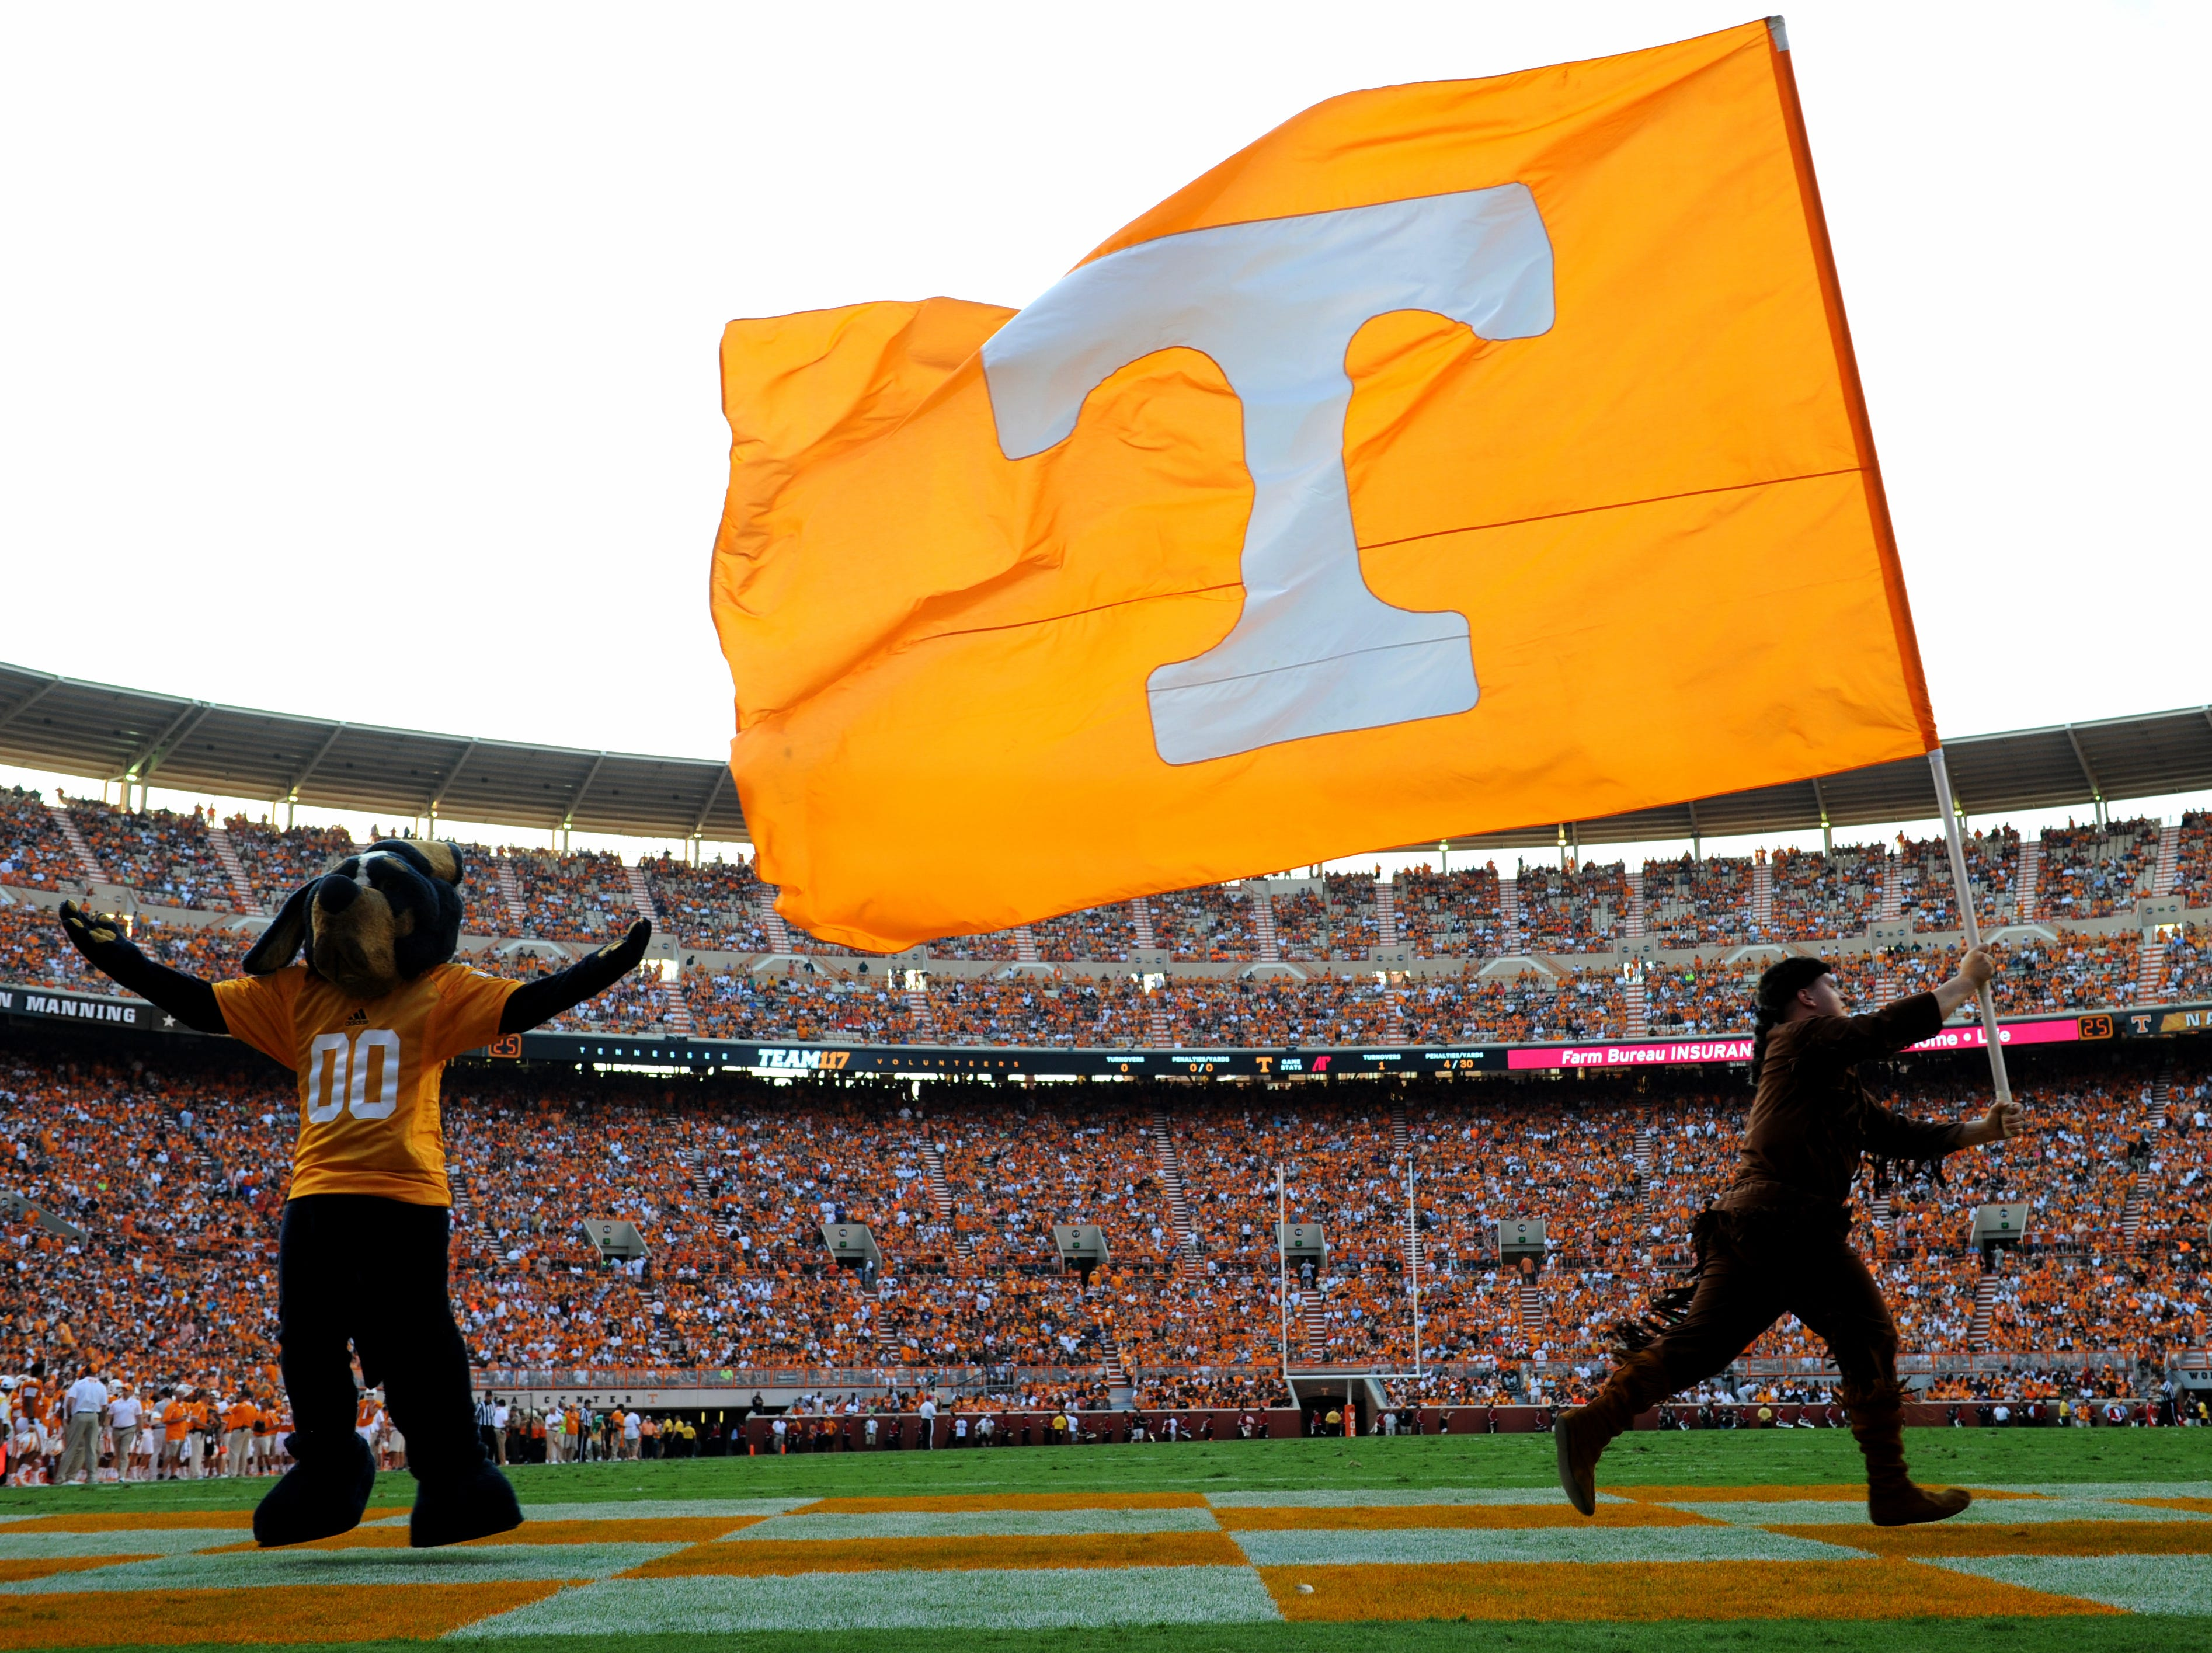 University of Tennessee mascots wave the power T flag after the team scores a touchdown during the first half against Austin Peay at Neyland Stadium, Saturday, August 31, 2013 in Knoxville, Tenn.